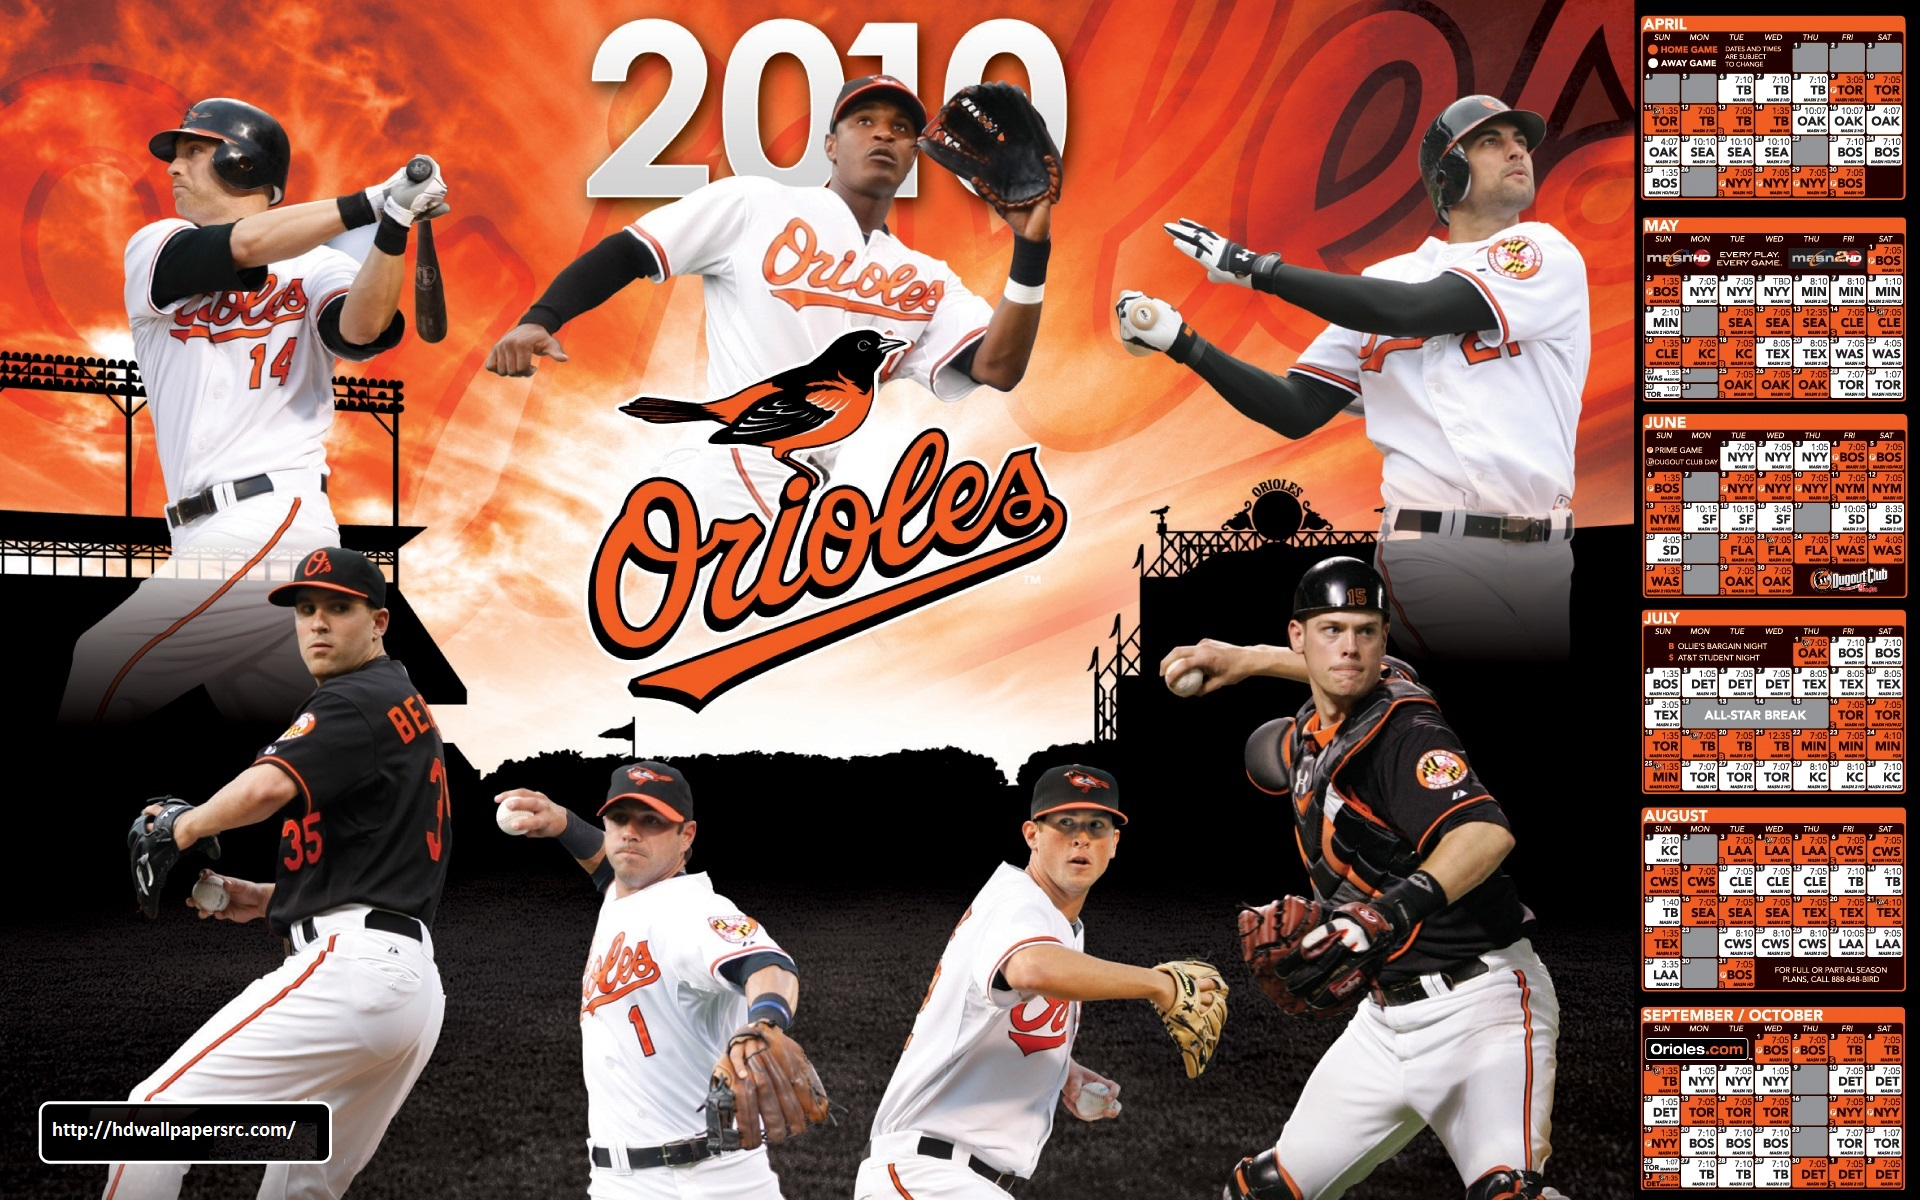 Baltimore Orioles  Wallpapers & Images